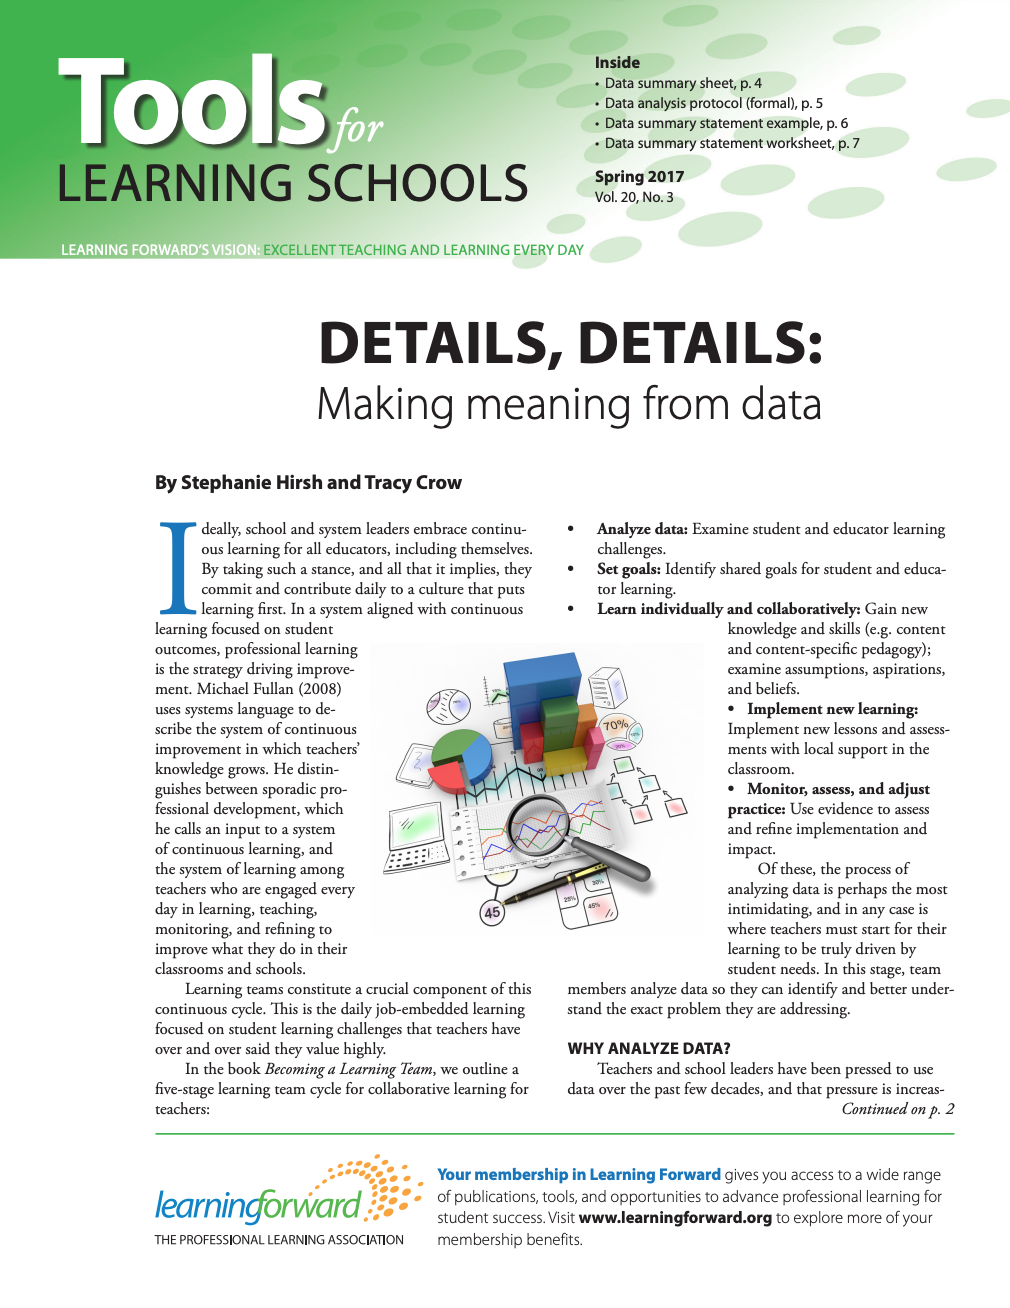 tools-for-learning-schools-spring-2017-vol-20-no-3